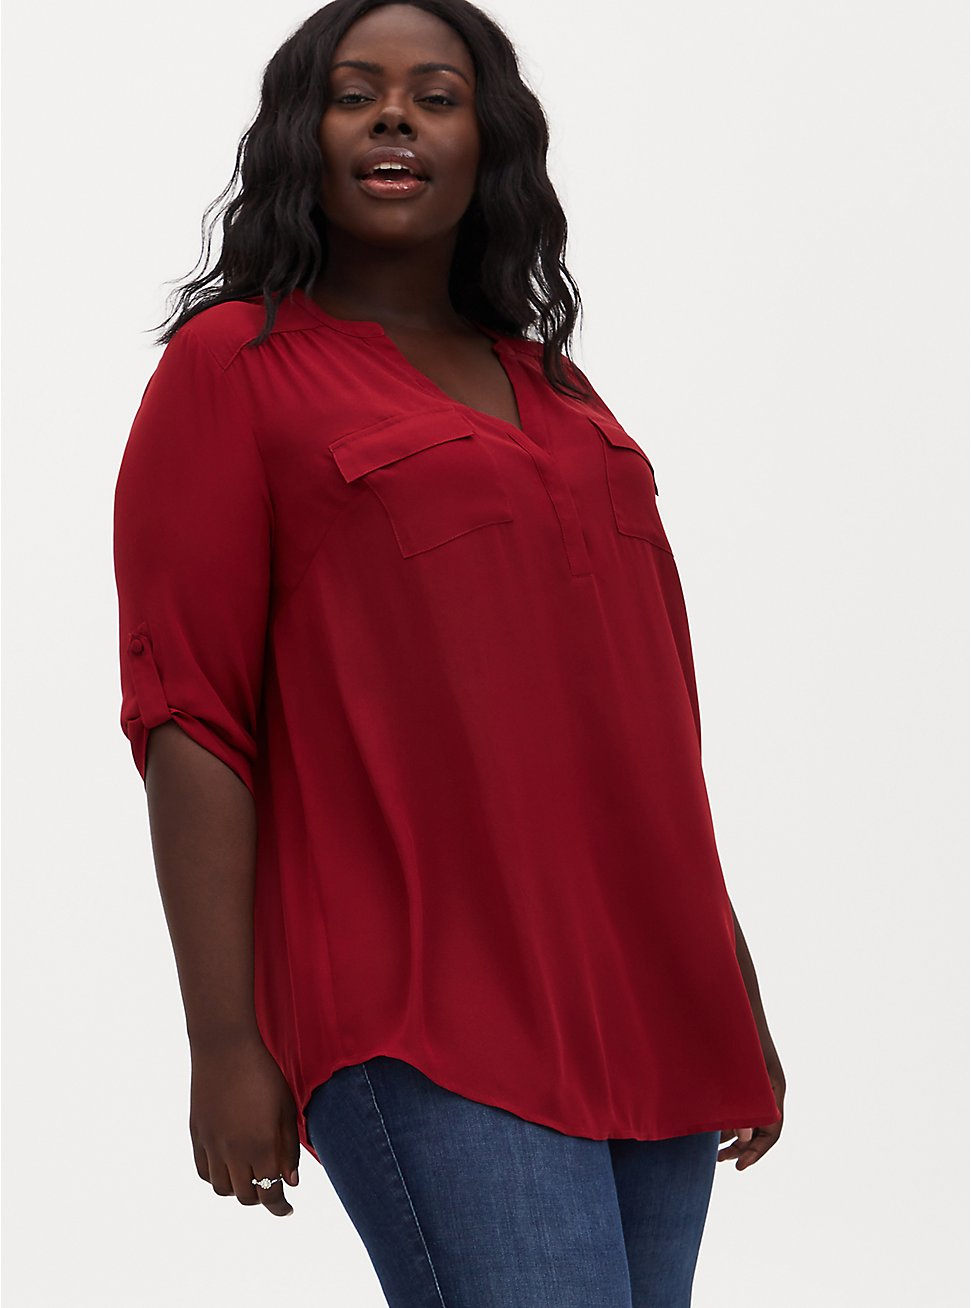 Harper - Dark Red Georgette Pullover Tunic Blouse, RED, hi-res